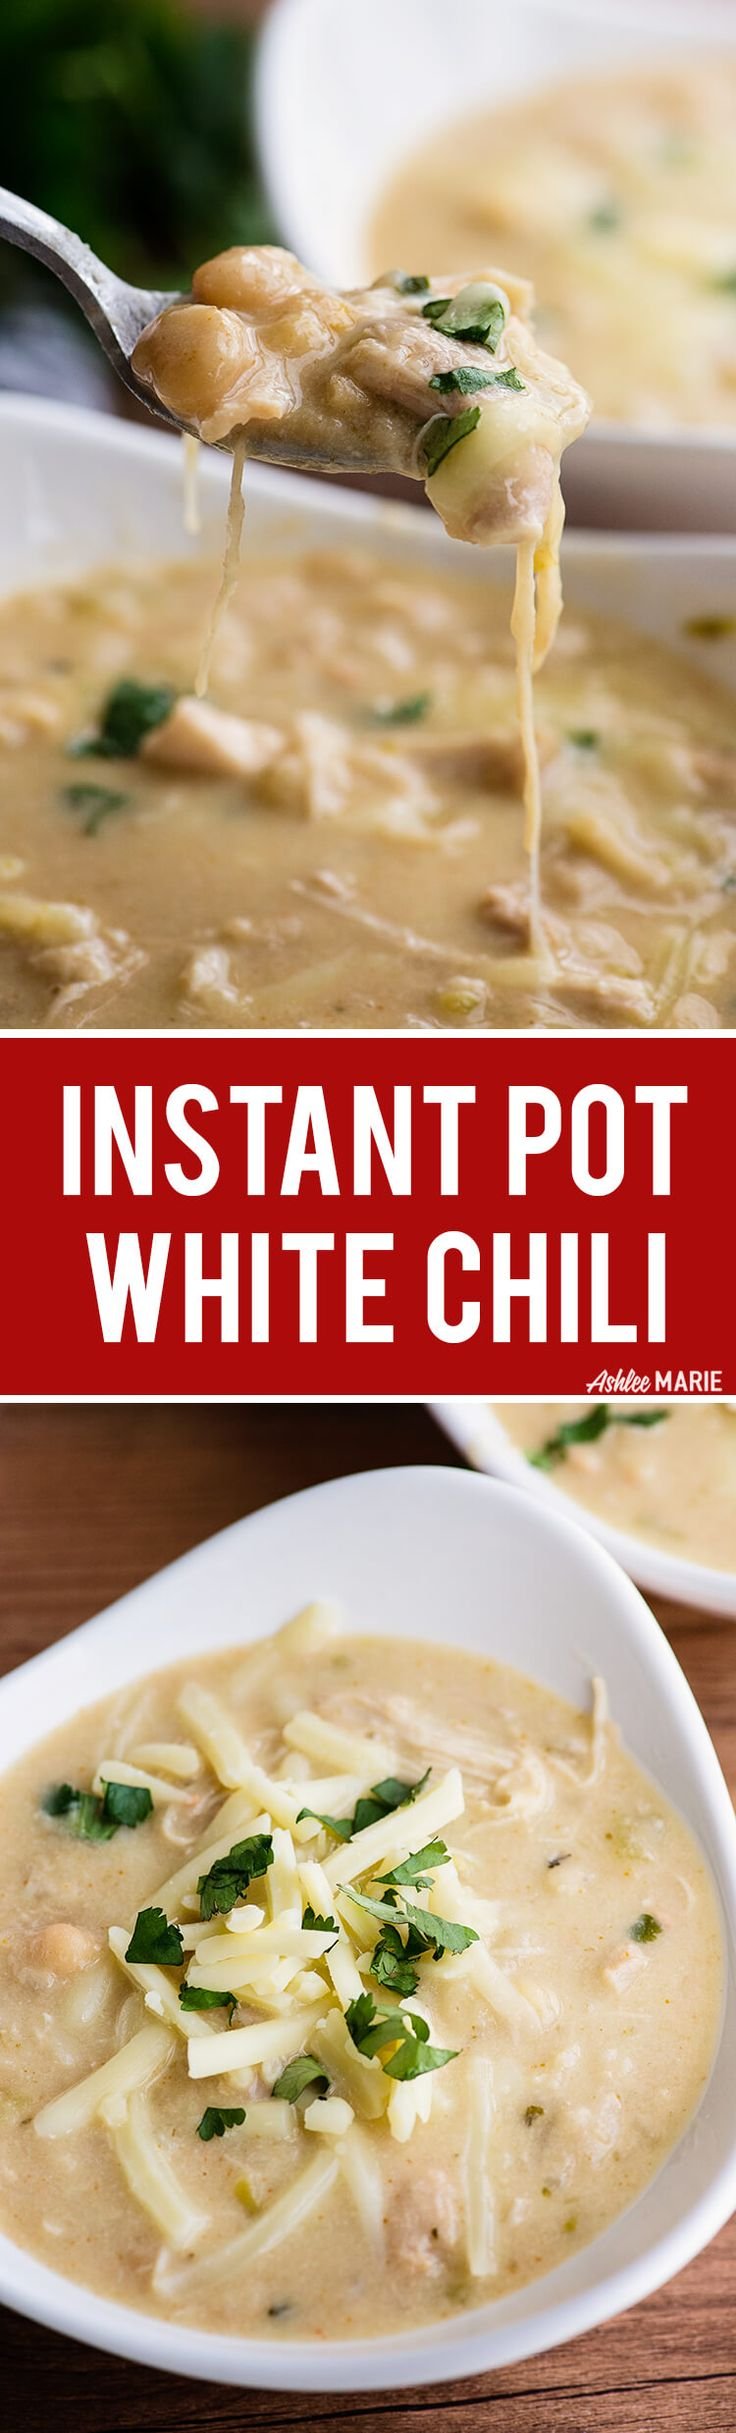 this easy instant pot white chicken chili is made with dried beans and everything is done in the instant pot - no frying or soaking or boiling on the side! easy peasy, creamy with a kick and a recipe video | instant pot | chili | comfort food | Ashlee Marie #instantpot #chili #comfortfood via @ashleemariecake